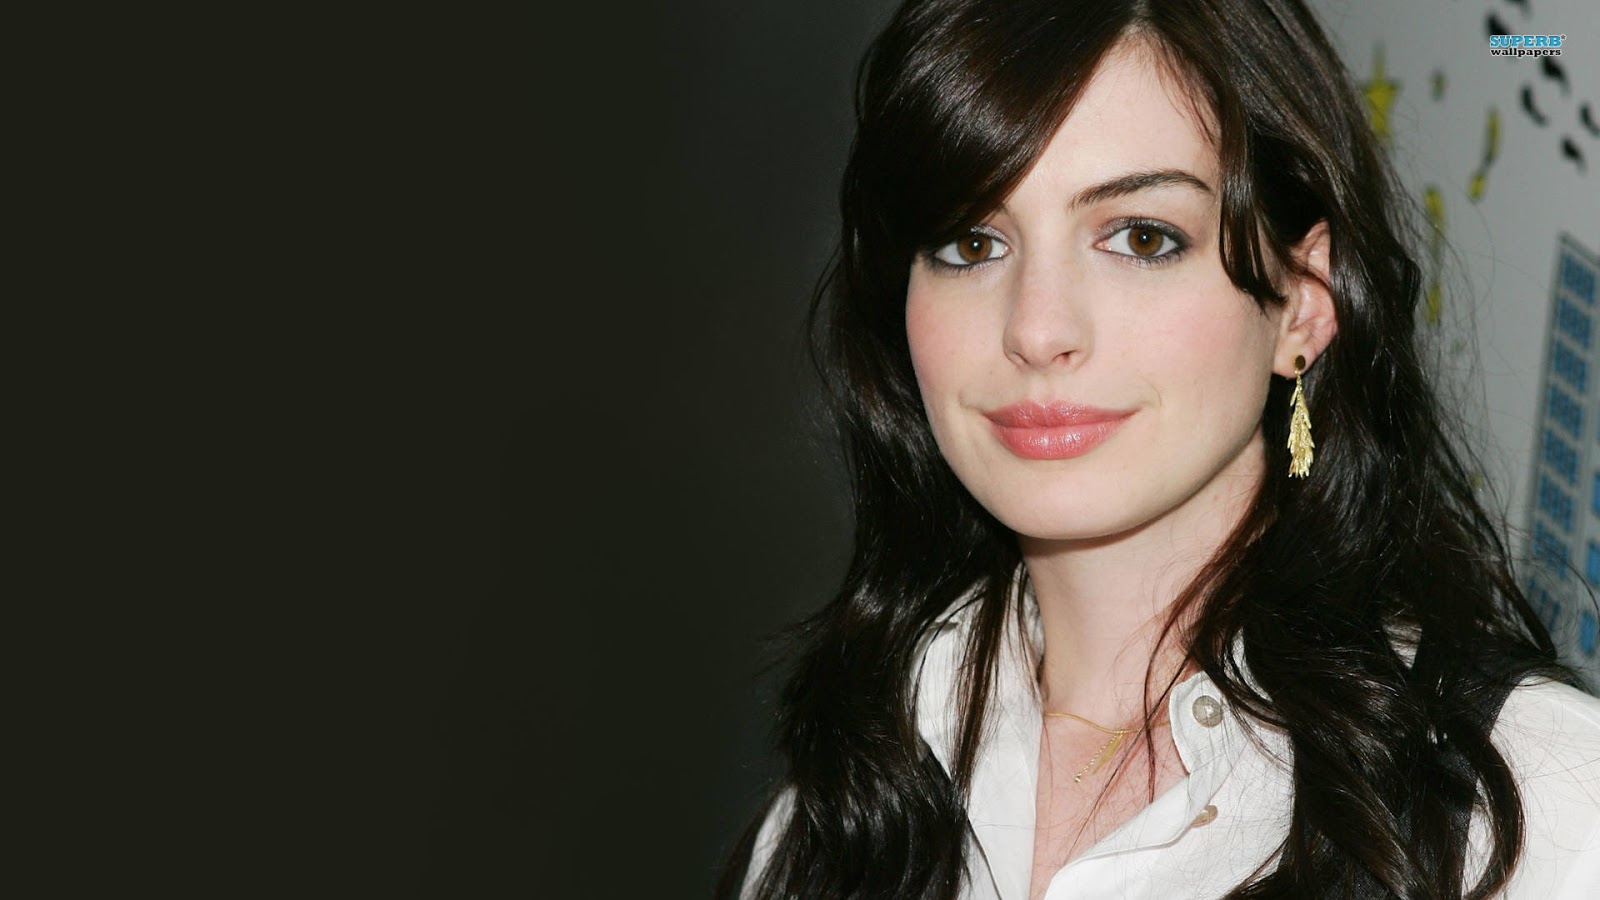 Anne hathaway hd wallpapers hd wallpapers - Celeb wallpapers ...